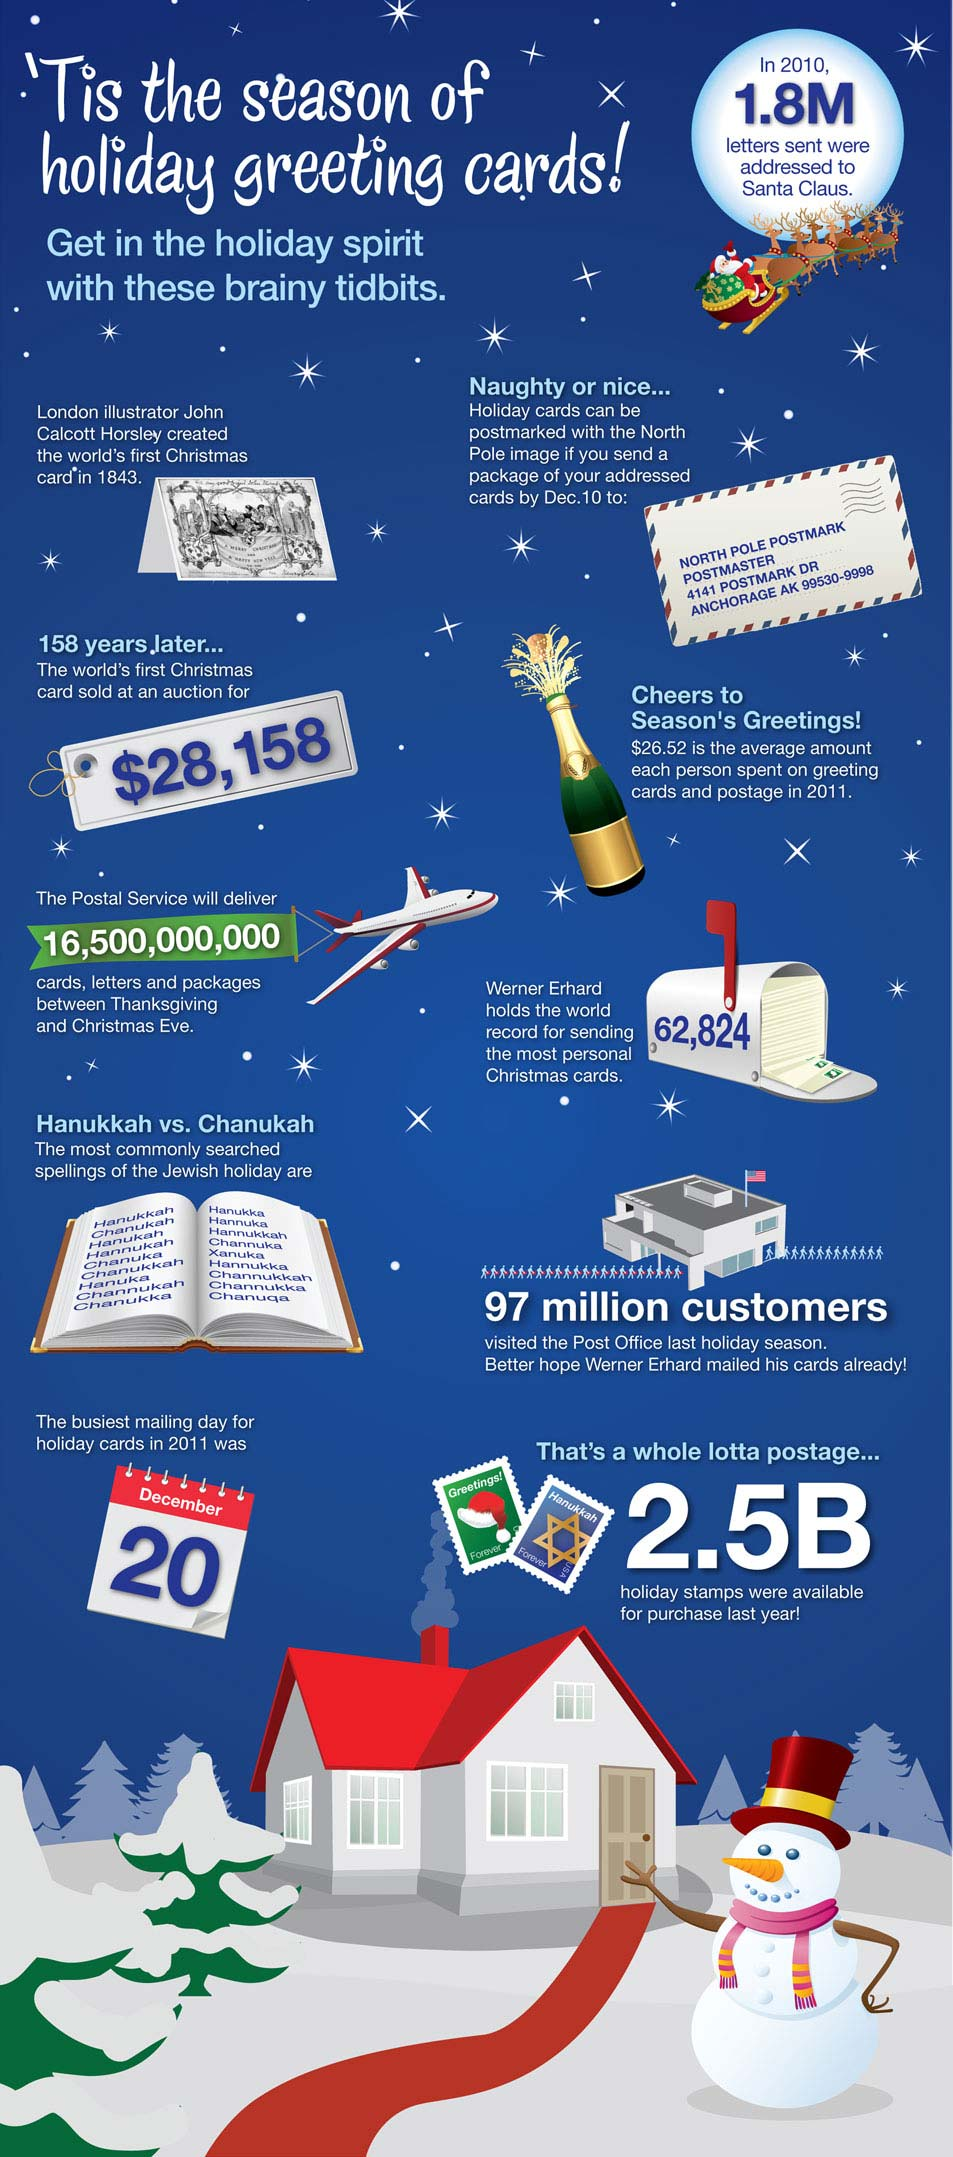 This Holiday Greeting Cards Infographic Is Brought To You